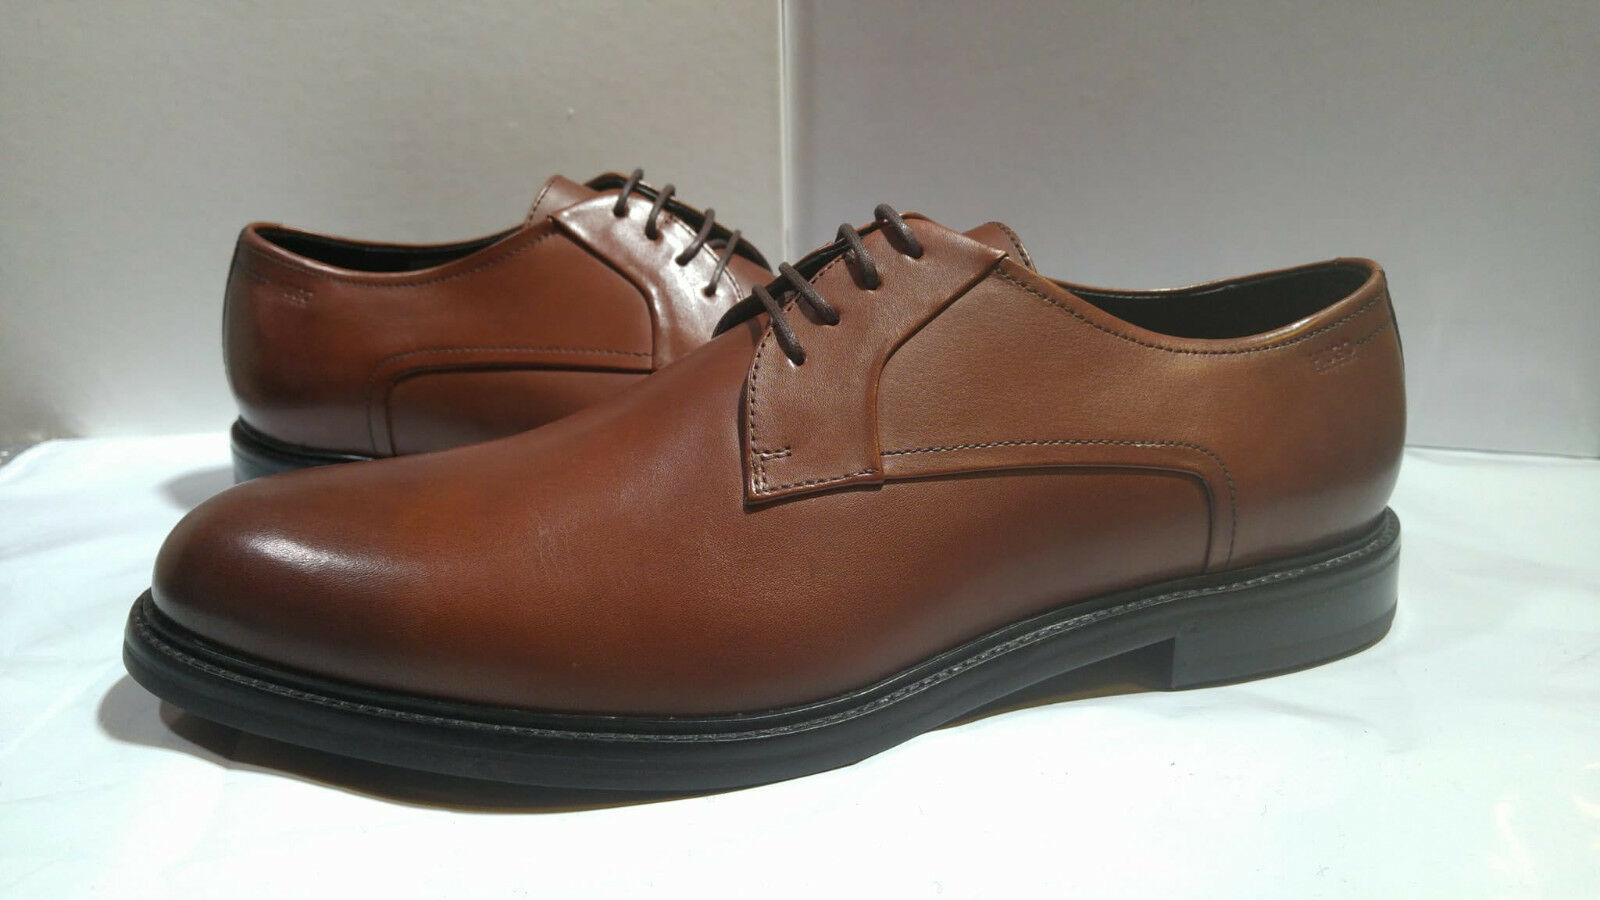 Hugo BOSS Neoclass Derby Uomo Scarpe Marroni Marroni Marroni 10.5UK 80b007 c018895a02e